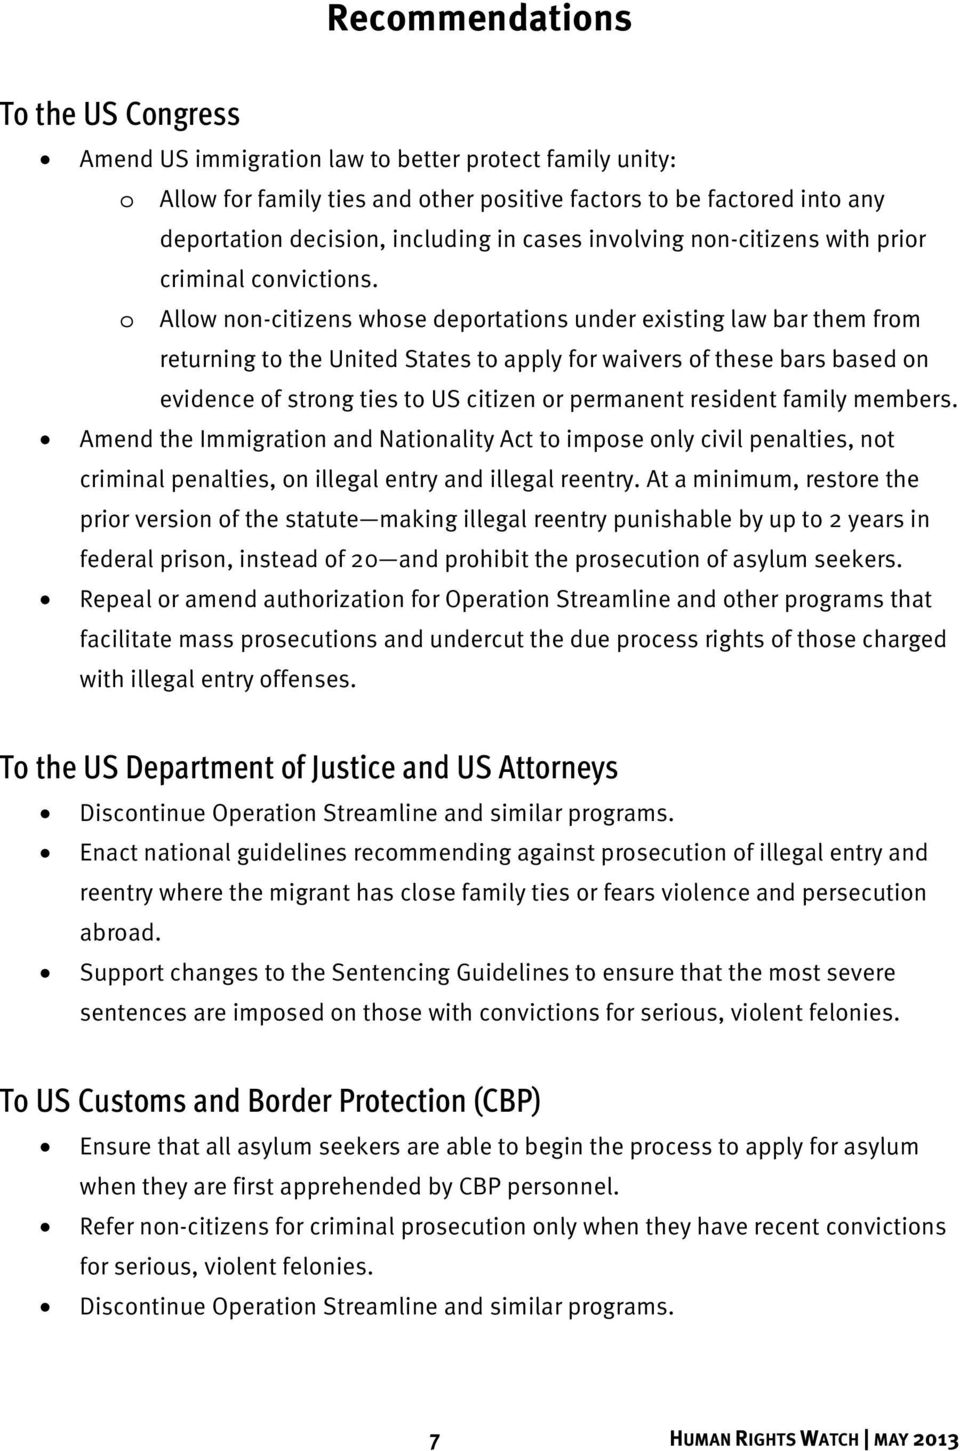 o Allow non-citizens whose deportations under existing law bar them from returning to the United States to apply for waivers of these bars based on evidence of strong ties to US citizen or permanent